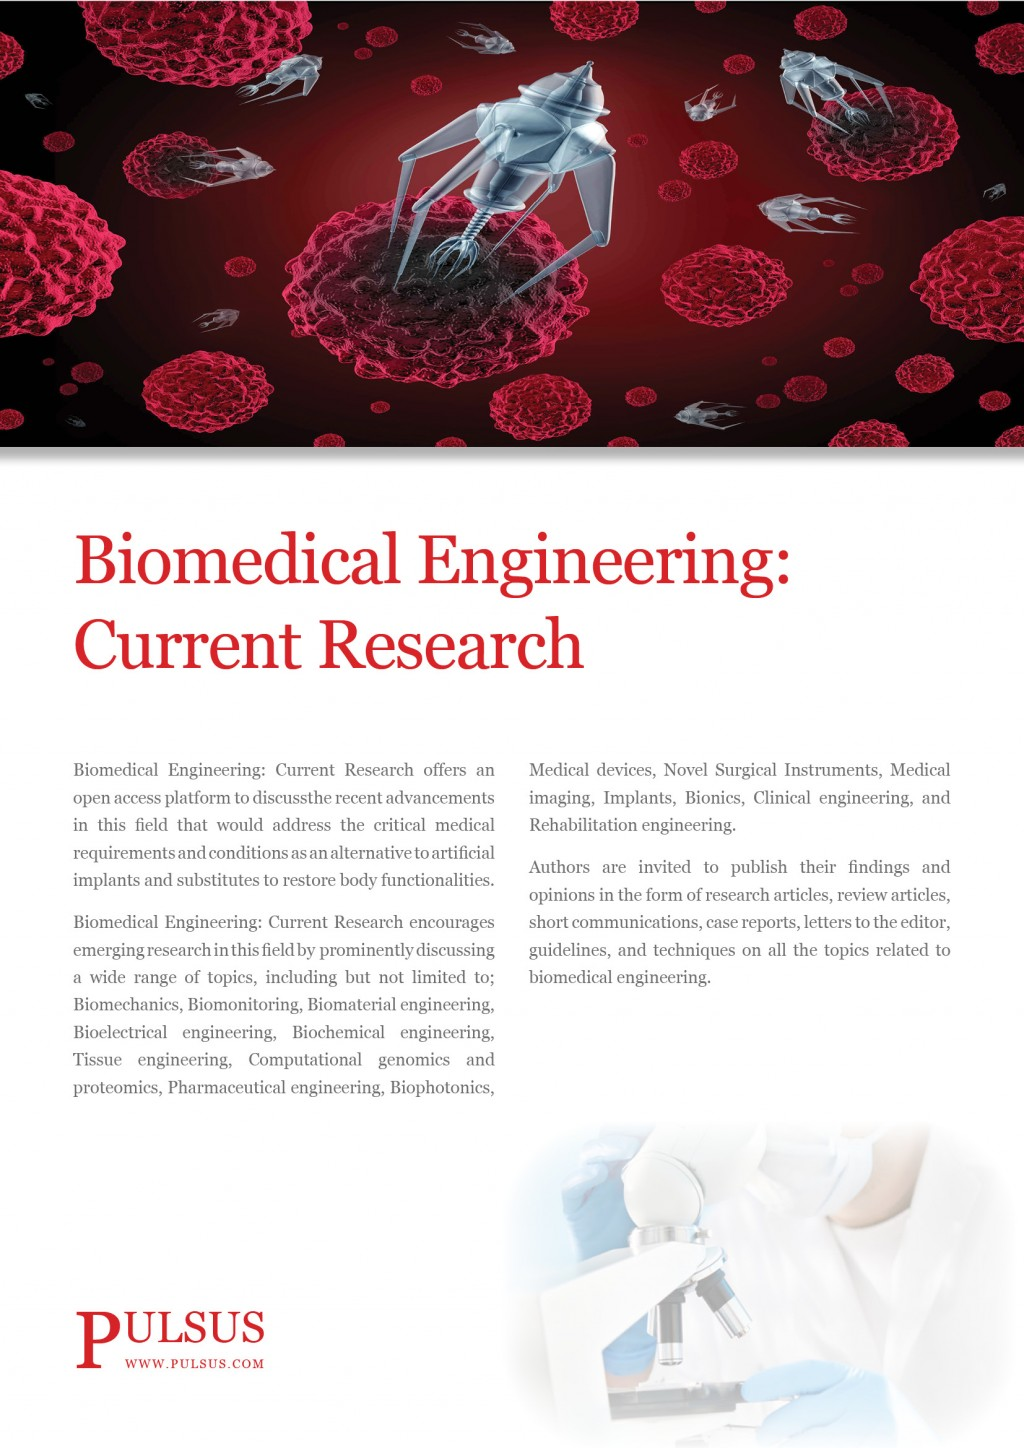 009 Biomedical Engineering Current Research Flyer Medical Article Topics Amazing Large